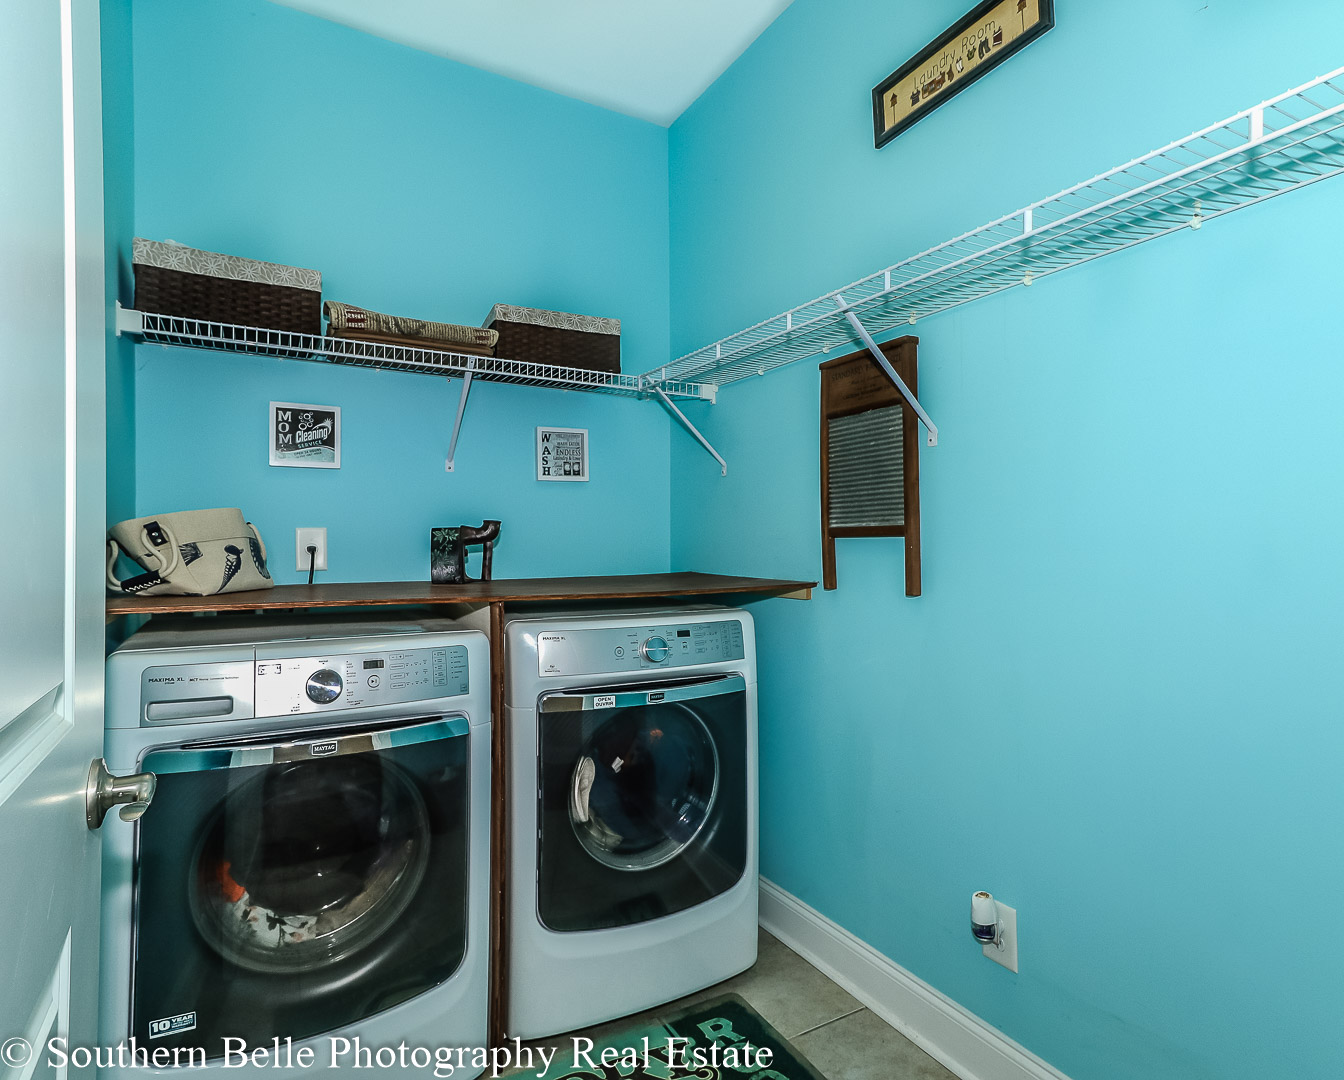 16. Laundry Room WM